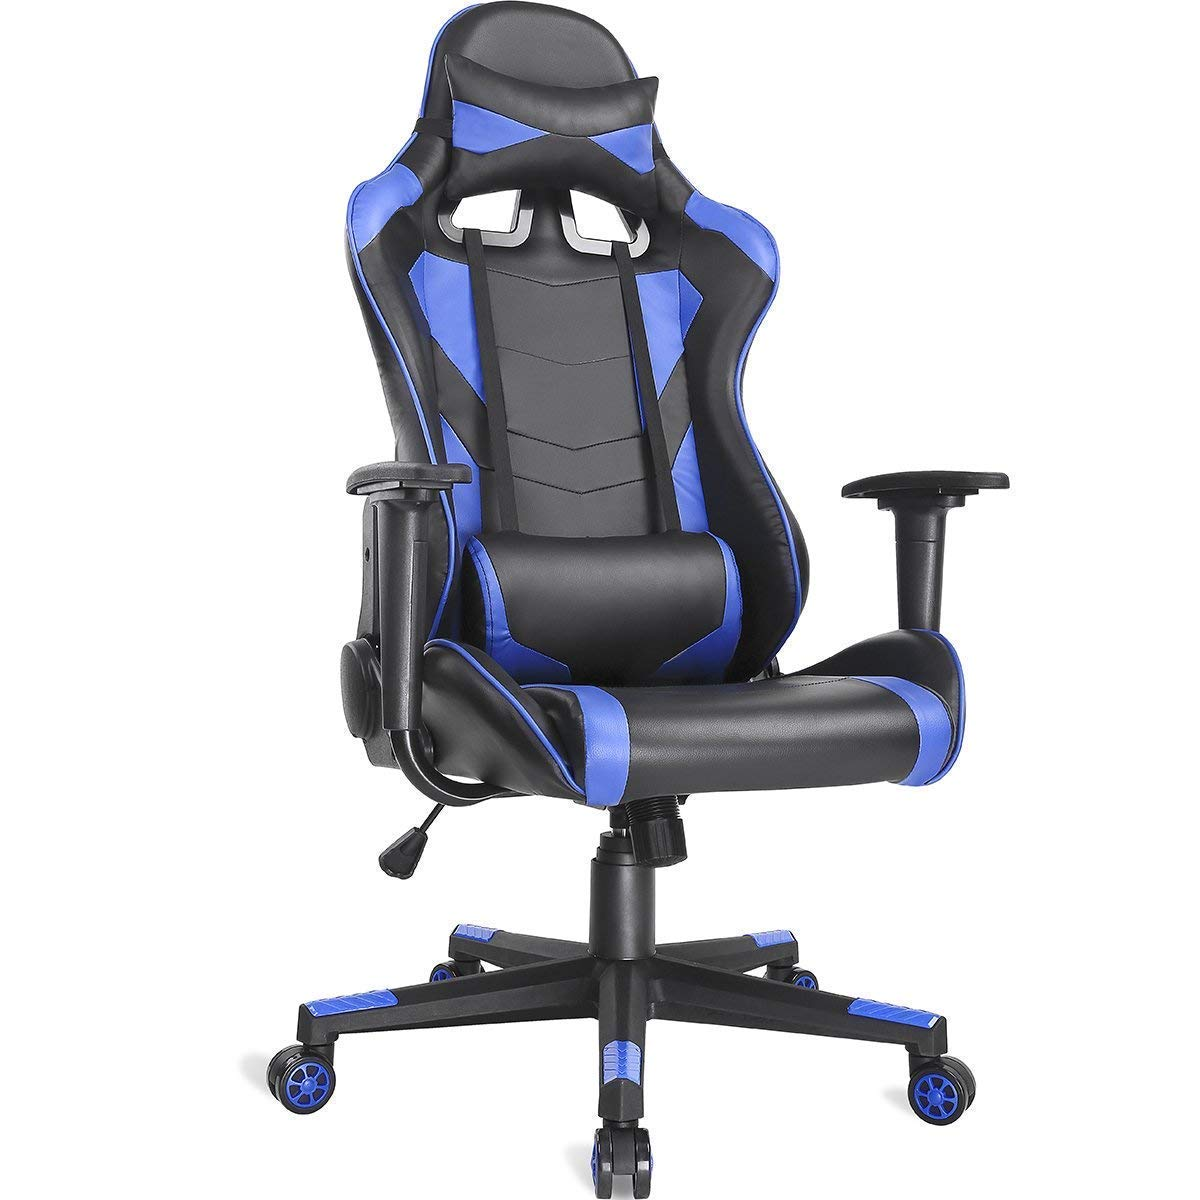 Gaming Chair,Racing Chair, Ergonomic Chair,Swivel Chair. Ulikit